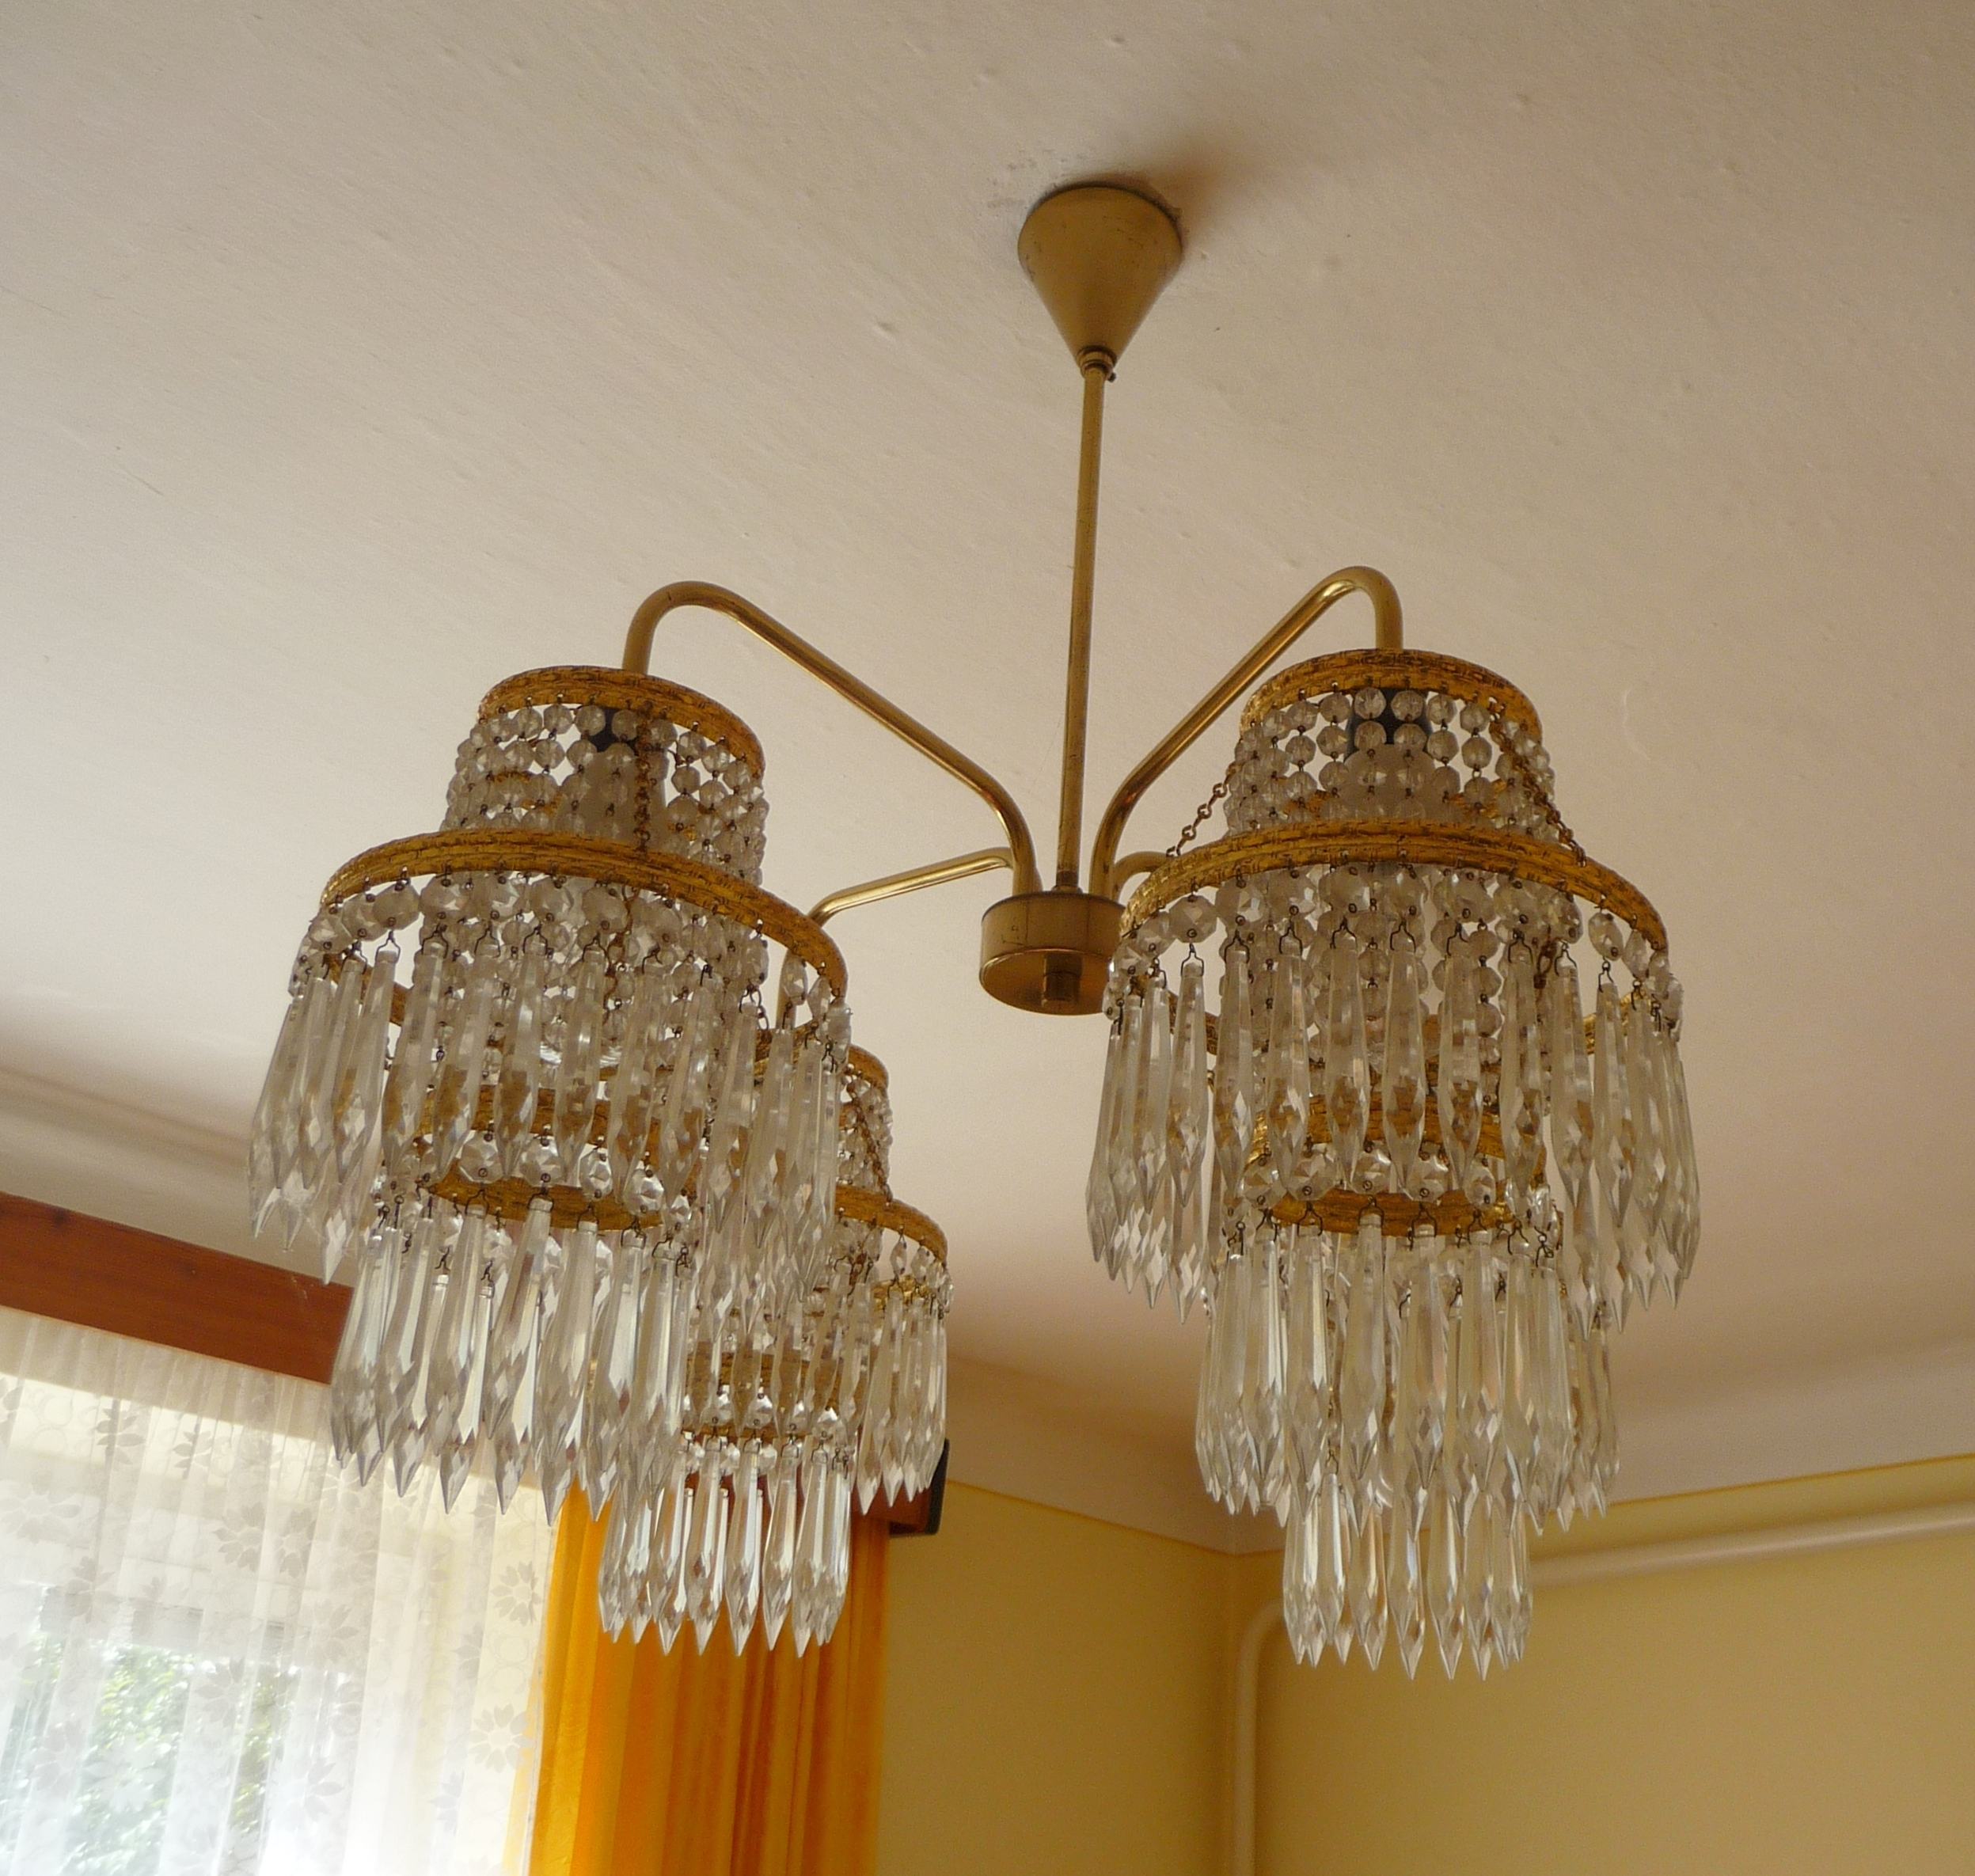 Best And Newest Lighting: Cut Glass Chandeliers With Modern Glass Chandelier Also Inside Coloured Glass Chandelier (View 15 of 20)